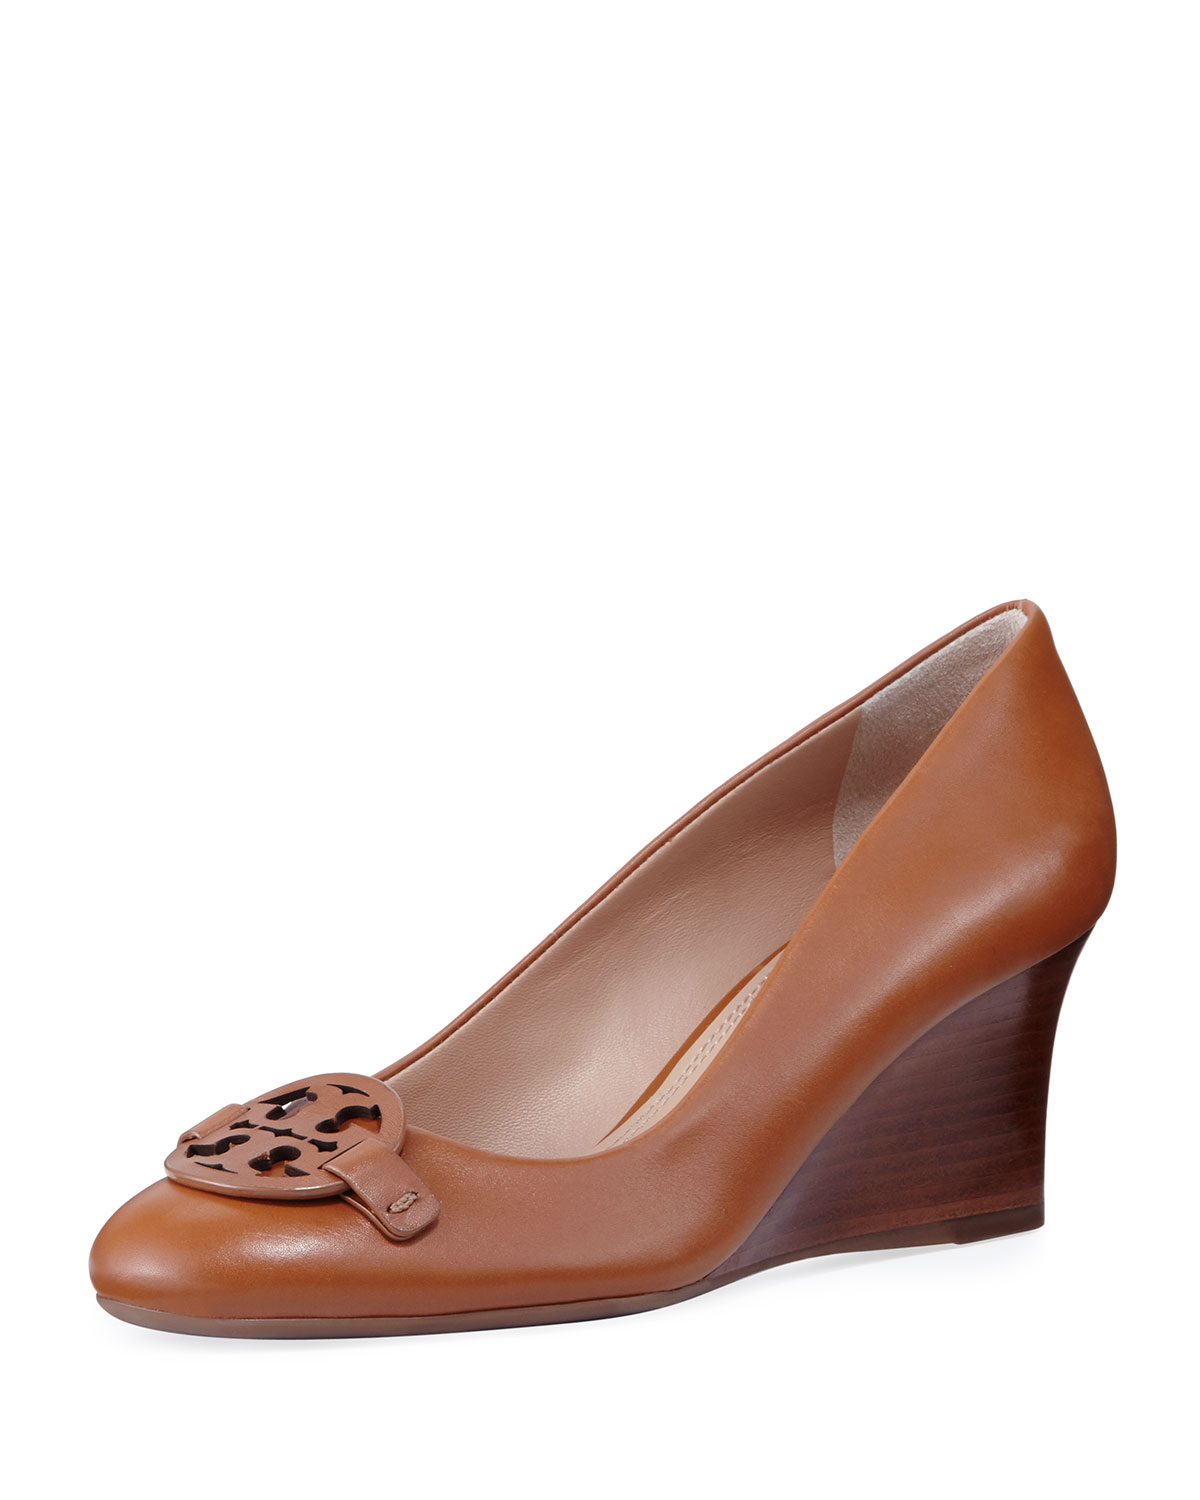 42f40ca50385ca Tory Burch Miller Smooth Leather 65mm Wedge Pump